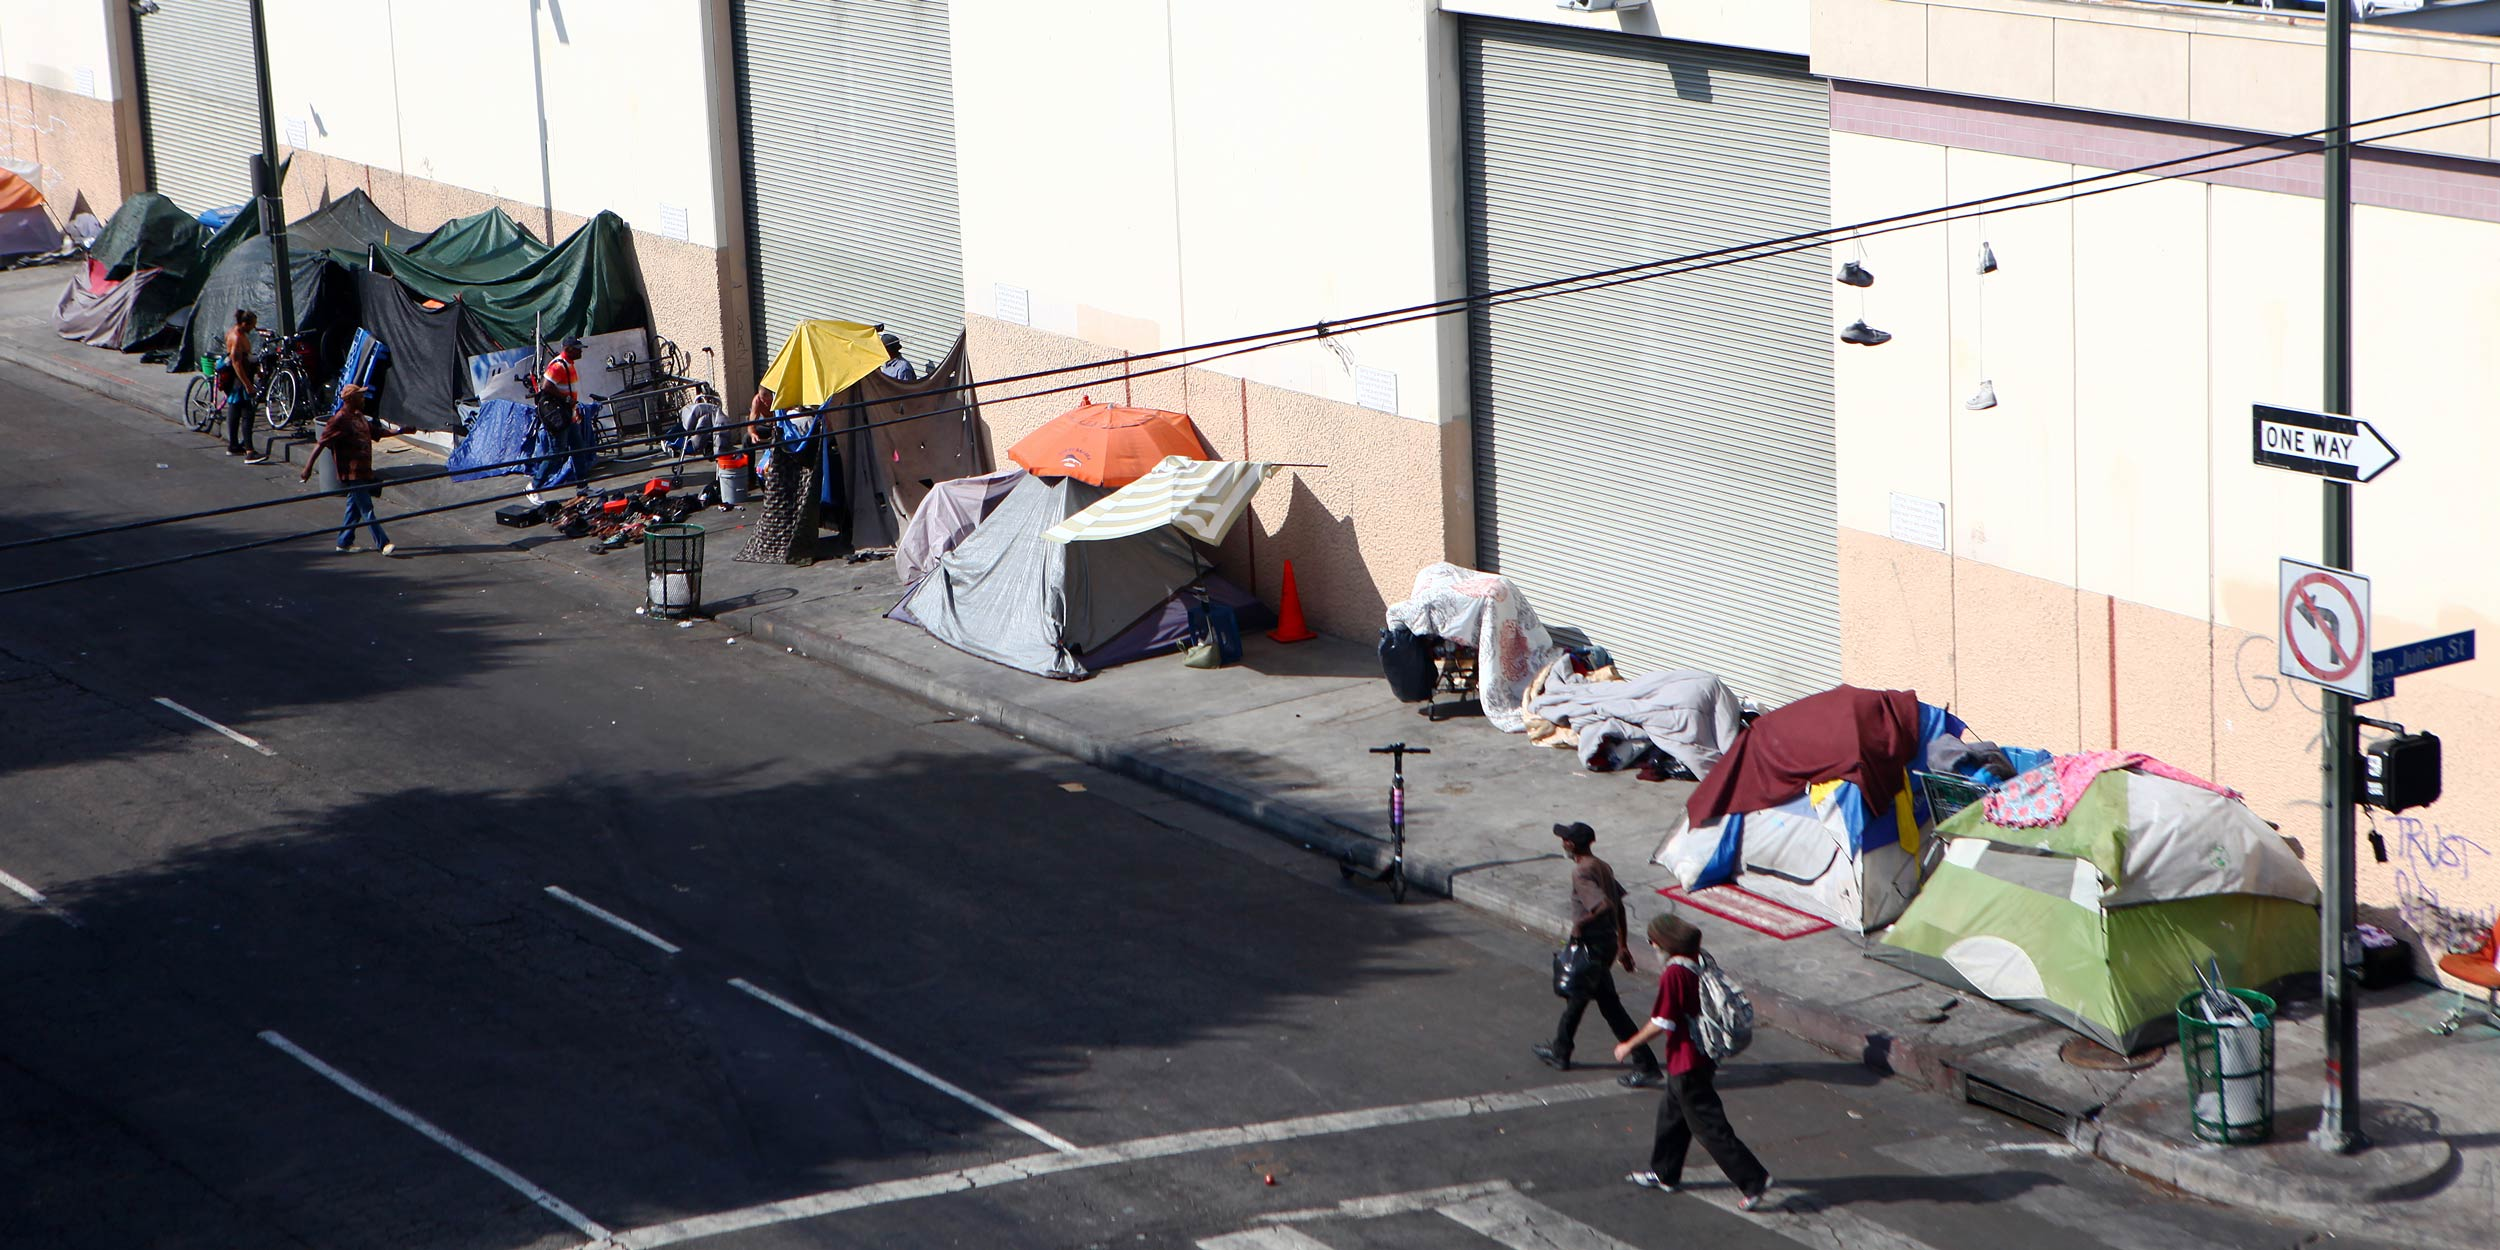 People walk past a homeless tent encampment in Skid Row.